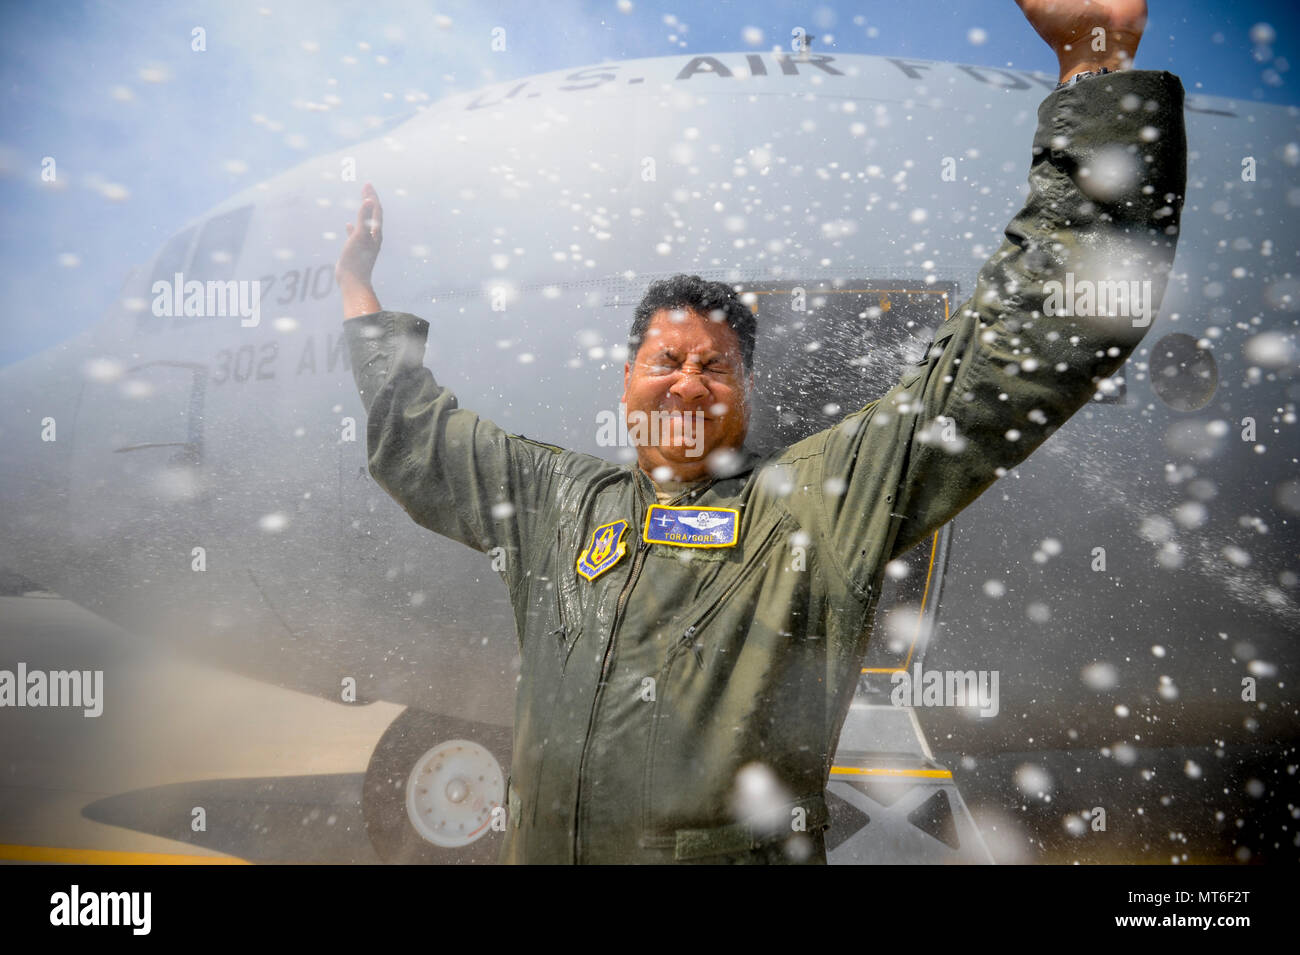 Air Force Reserve Lt. Col. Tora Gore, a C-130 flight test navigator with the 339th Flight Test Squadron, receives showers of water and champaign after flying his last mission before retirement July 20, 2017, at Robins Air Force Base, Ga. Gore completed 10 years of Air Force active-duty service before joining the Alaska Air National Guard in 2004 and the Air Force Reserve in 2008. (U.S. Air Force photo by Jamal D. Sutter) - Stock Image